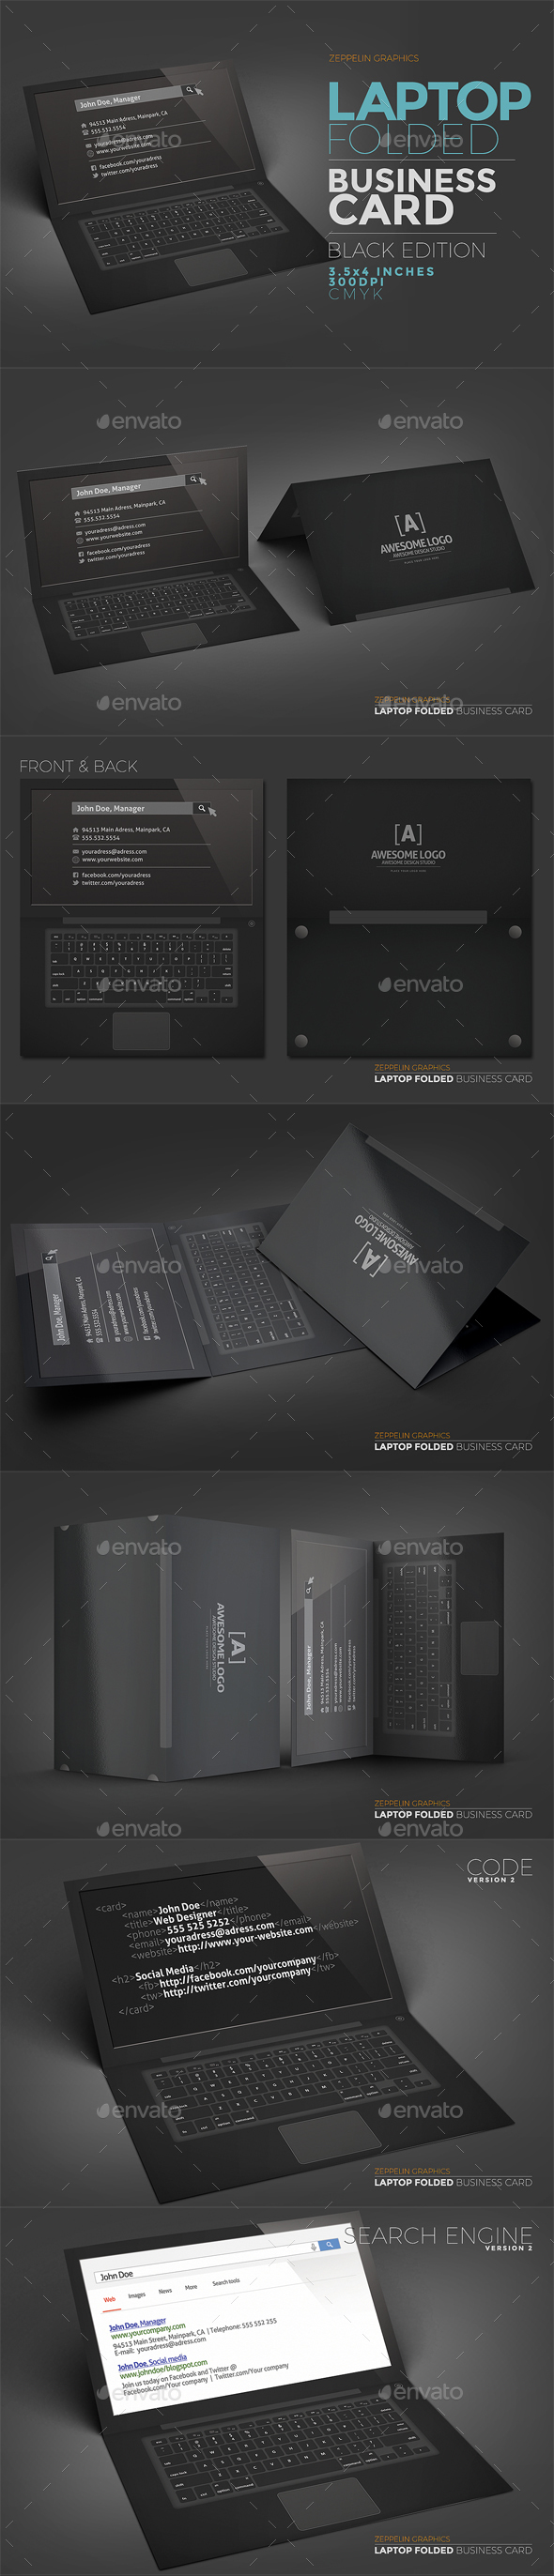 Laptop Business Card Template - Black Edition - Business Cards Print Templates